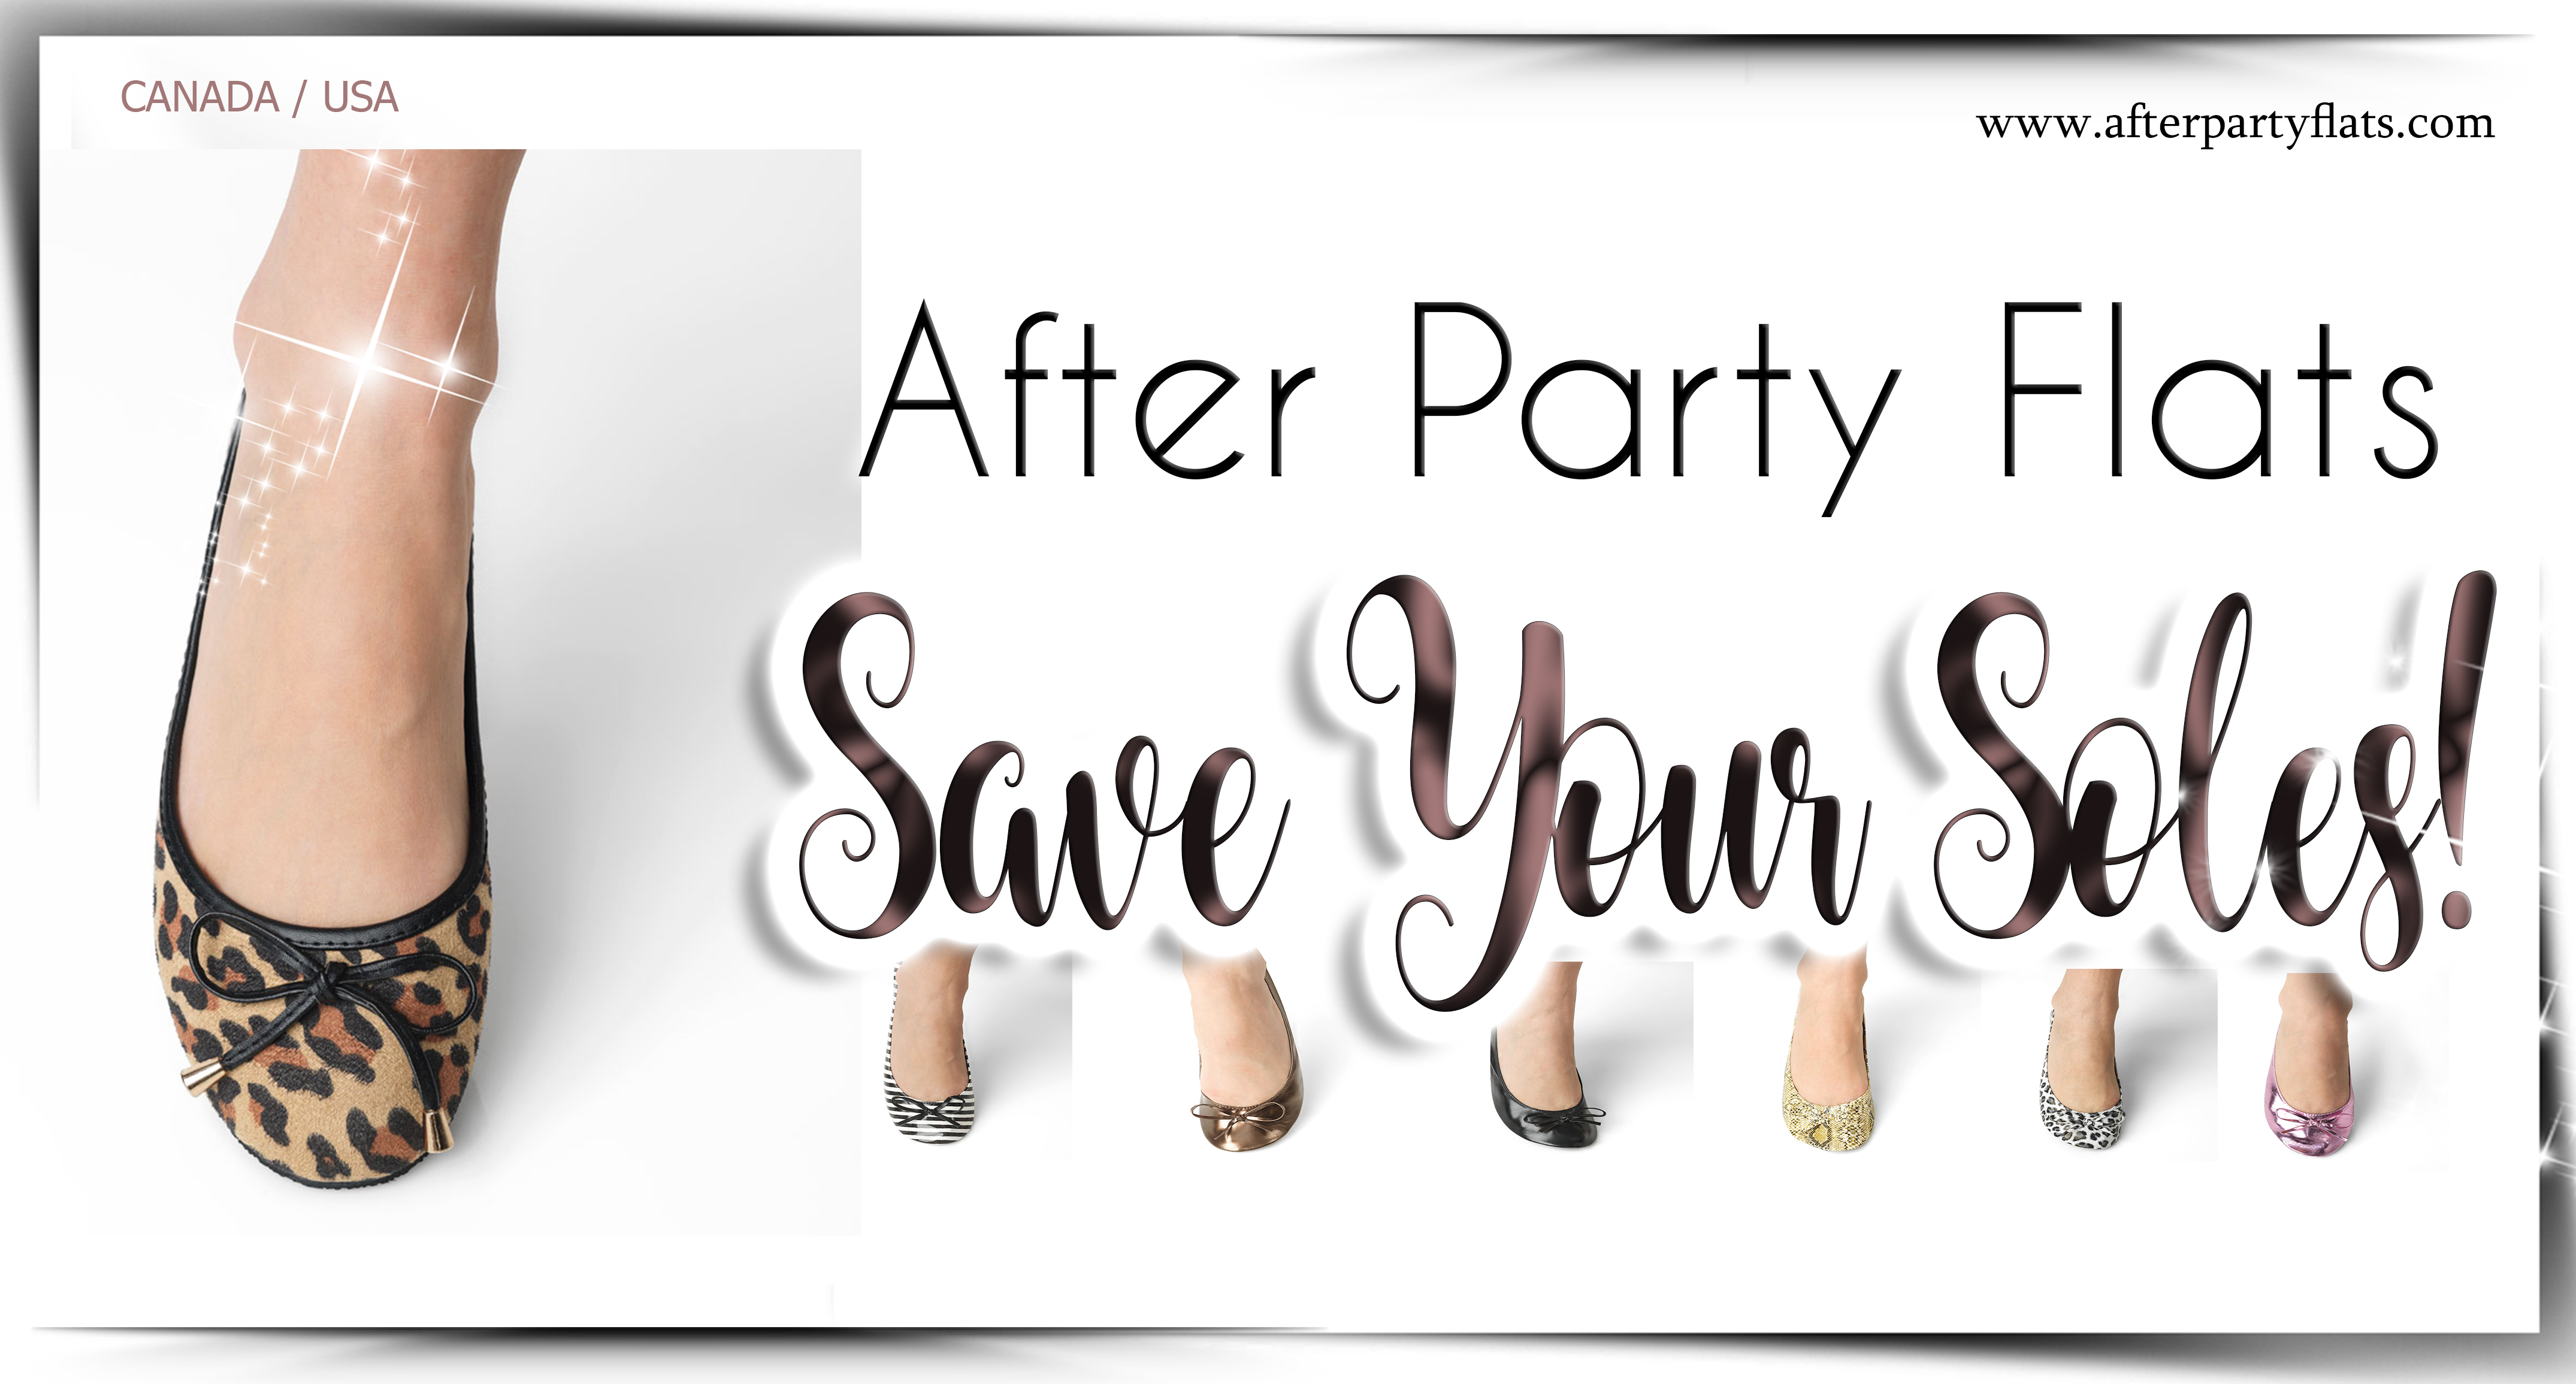 AFTER PARTY FLATS FB COVER PLAIN SHOES 3